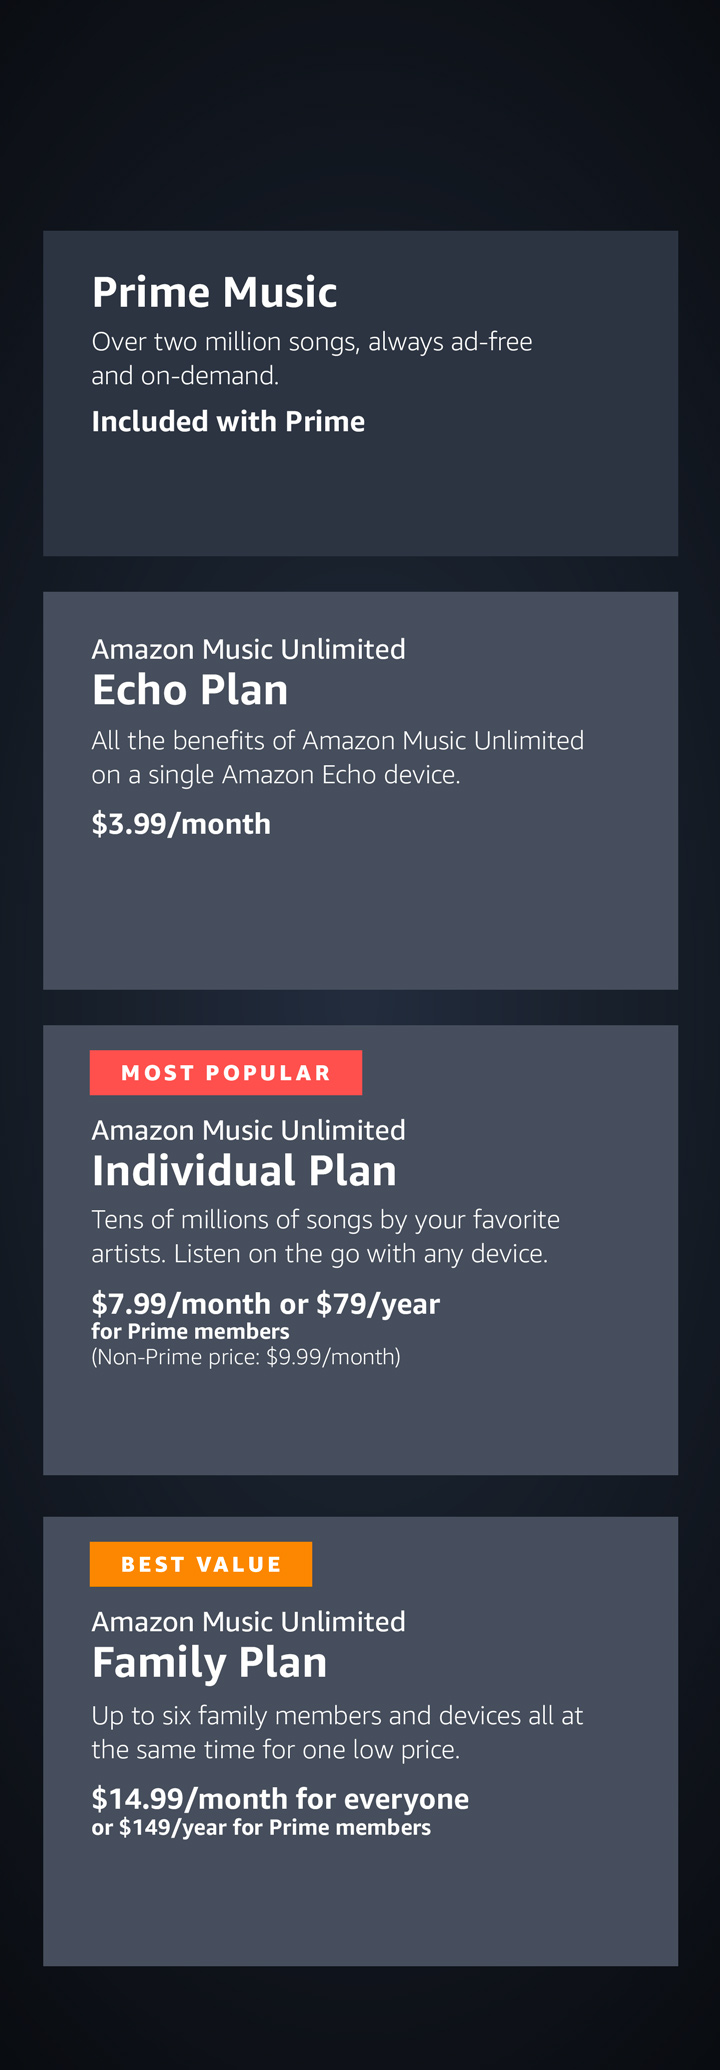 'Choose the right Amazon Music plan for you. Prime Music - Over two million songs, always ad-free and on-demand. Free with Prime. Amazon Music Unlimited Echo plan - Tens of millions of songs on a single Echo, Dot, Tap, or show. Sign up only with Alexa. Just ask. $3.99 per month. Amazon Music Unlimited Individual plan - Tens of millions of songs on one account, on all your devices. $7.99 per month or $79 peryear for Prime members (Non-Prime price: $9.99/month). Amazon Music Unlimited Family plan - All the benefits of the individual plan for up to six family members. $14.99 per month or $149 per year.' from the web at 'https://images-na.ssl-images-amazon.com/images/G/01/digital/music/merch/2016/Other/PM_LandingPages/US_PM_LandingPage_4pack_Tablet_V5_1x._CB524581476_.jpg'